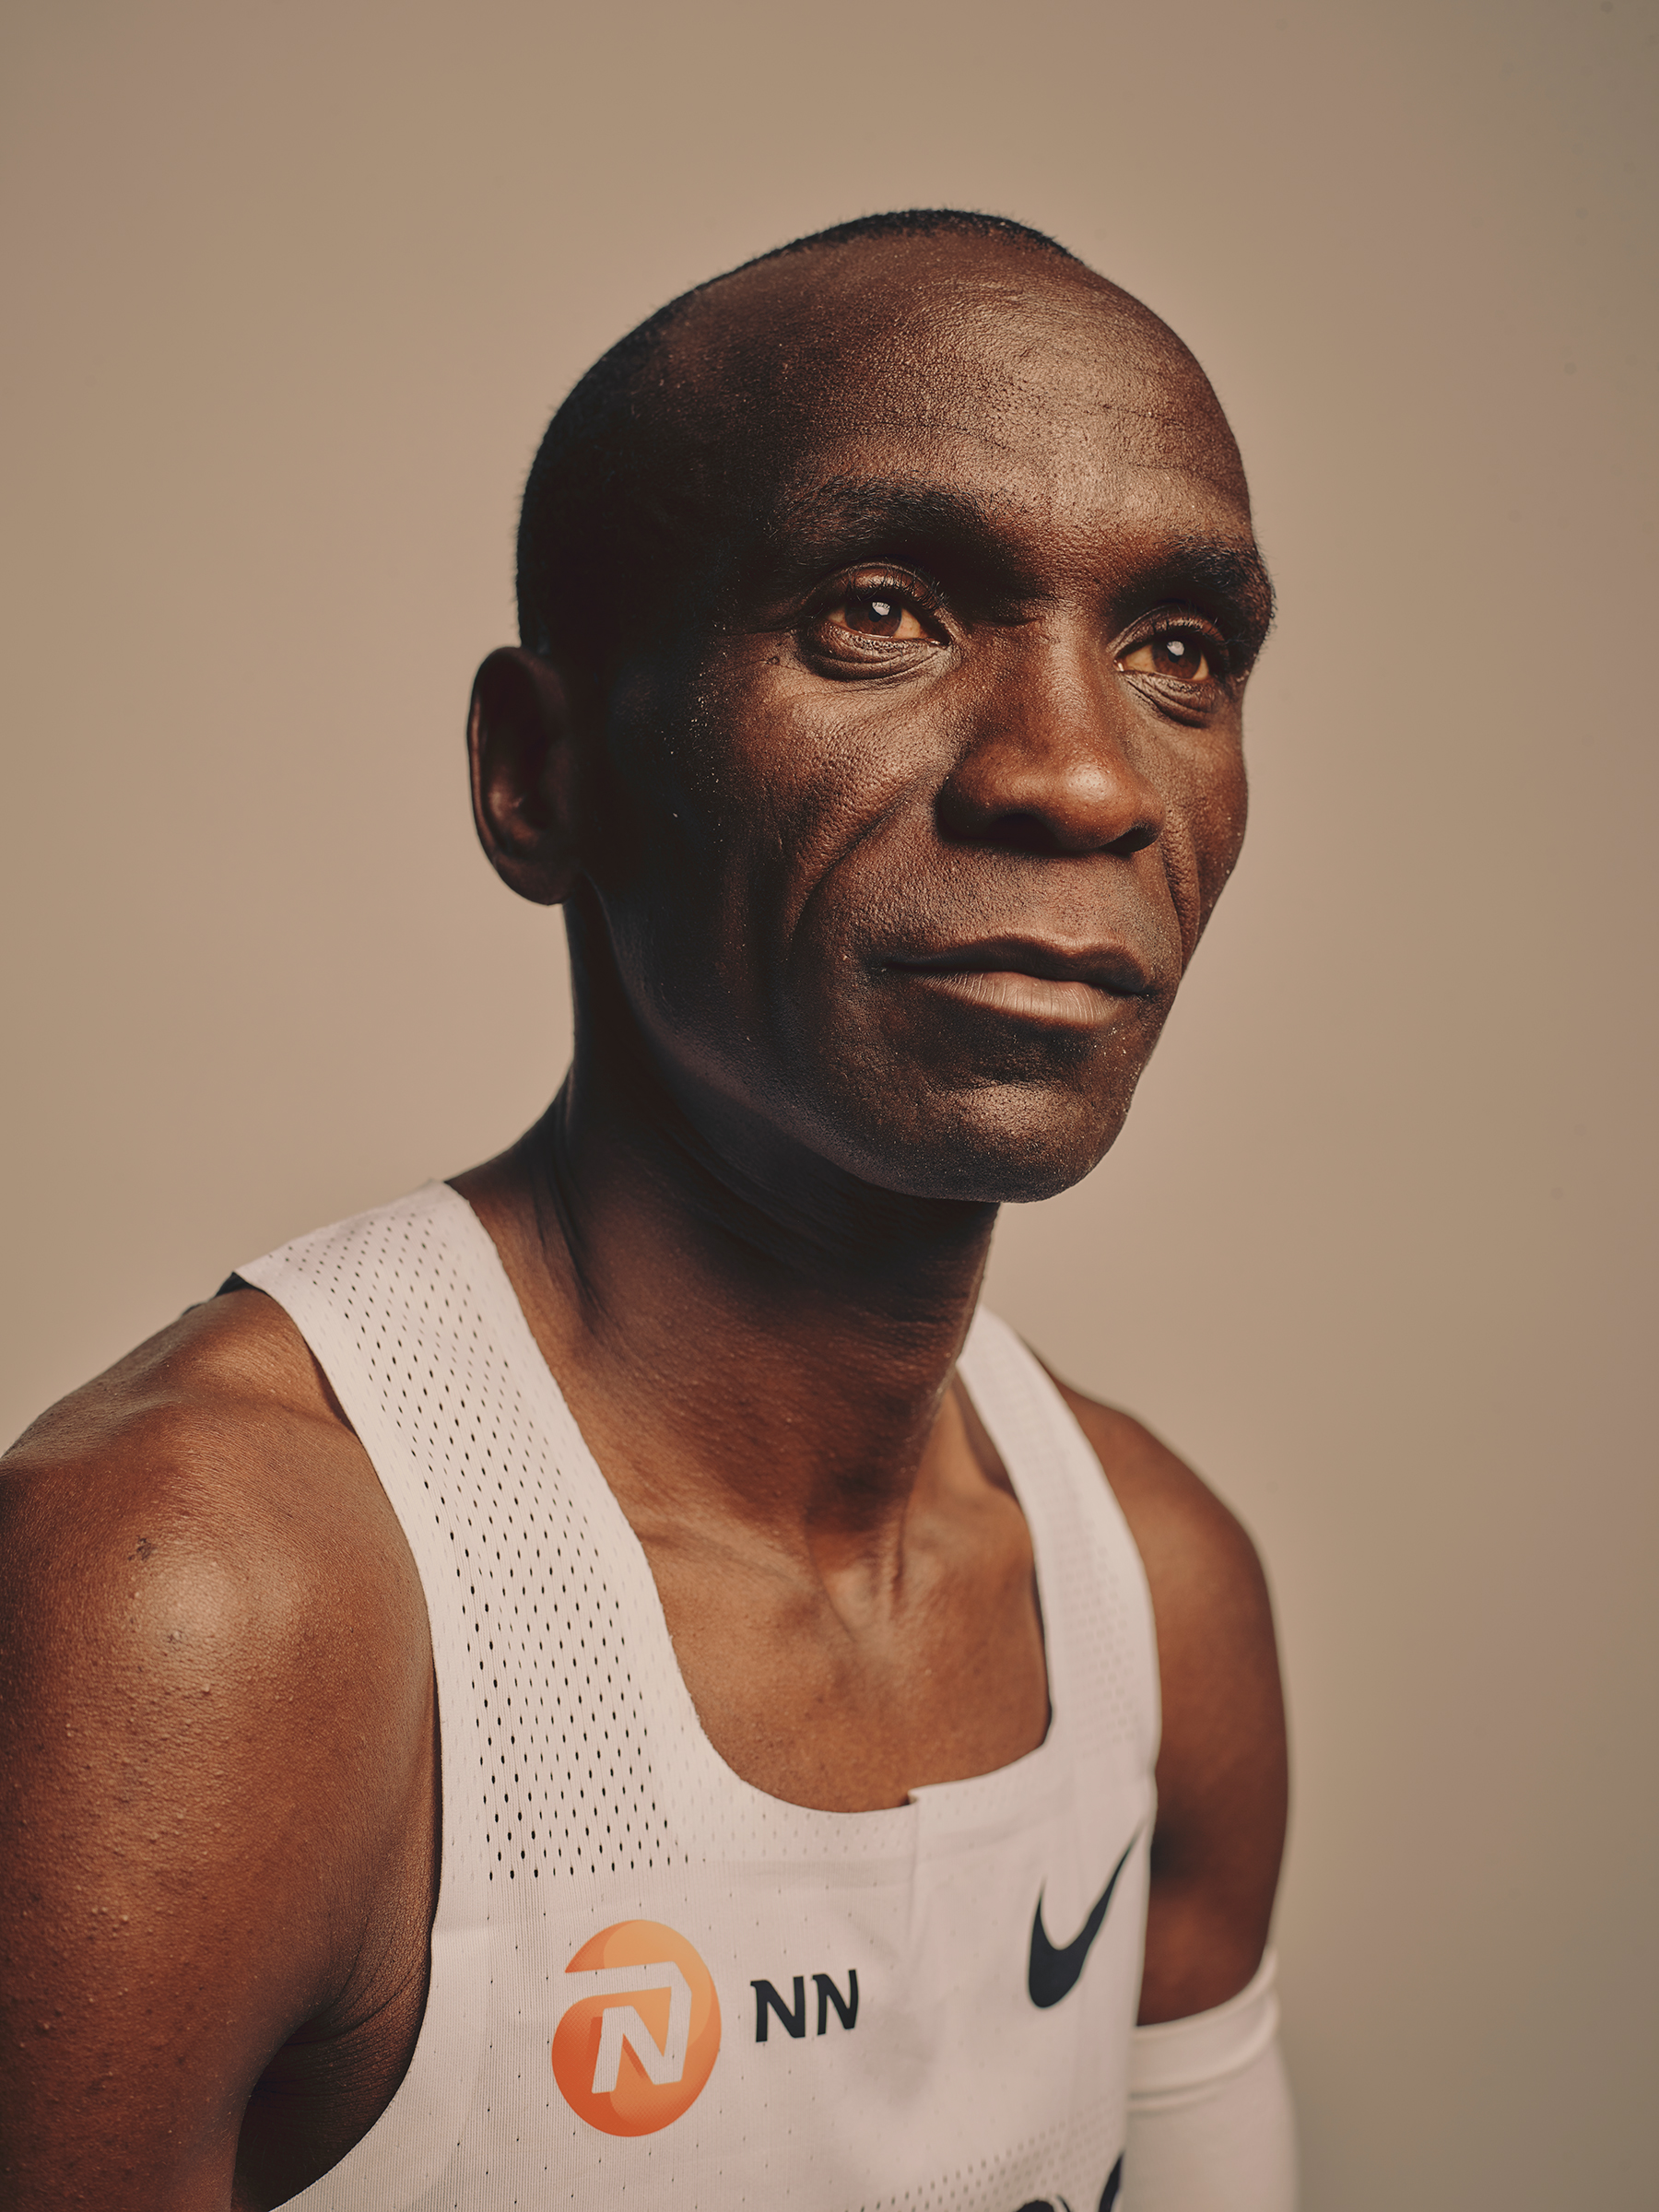 Eliud Kipchoge, photographed after his historic race in Vienna, on Oct. 12.